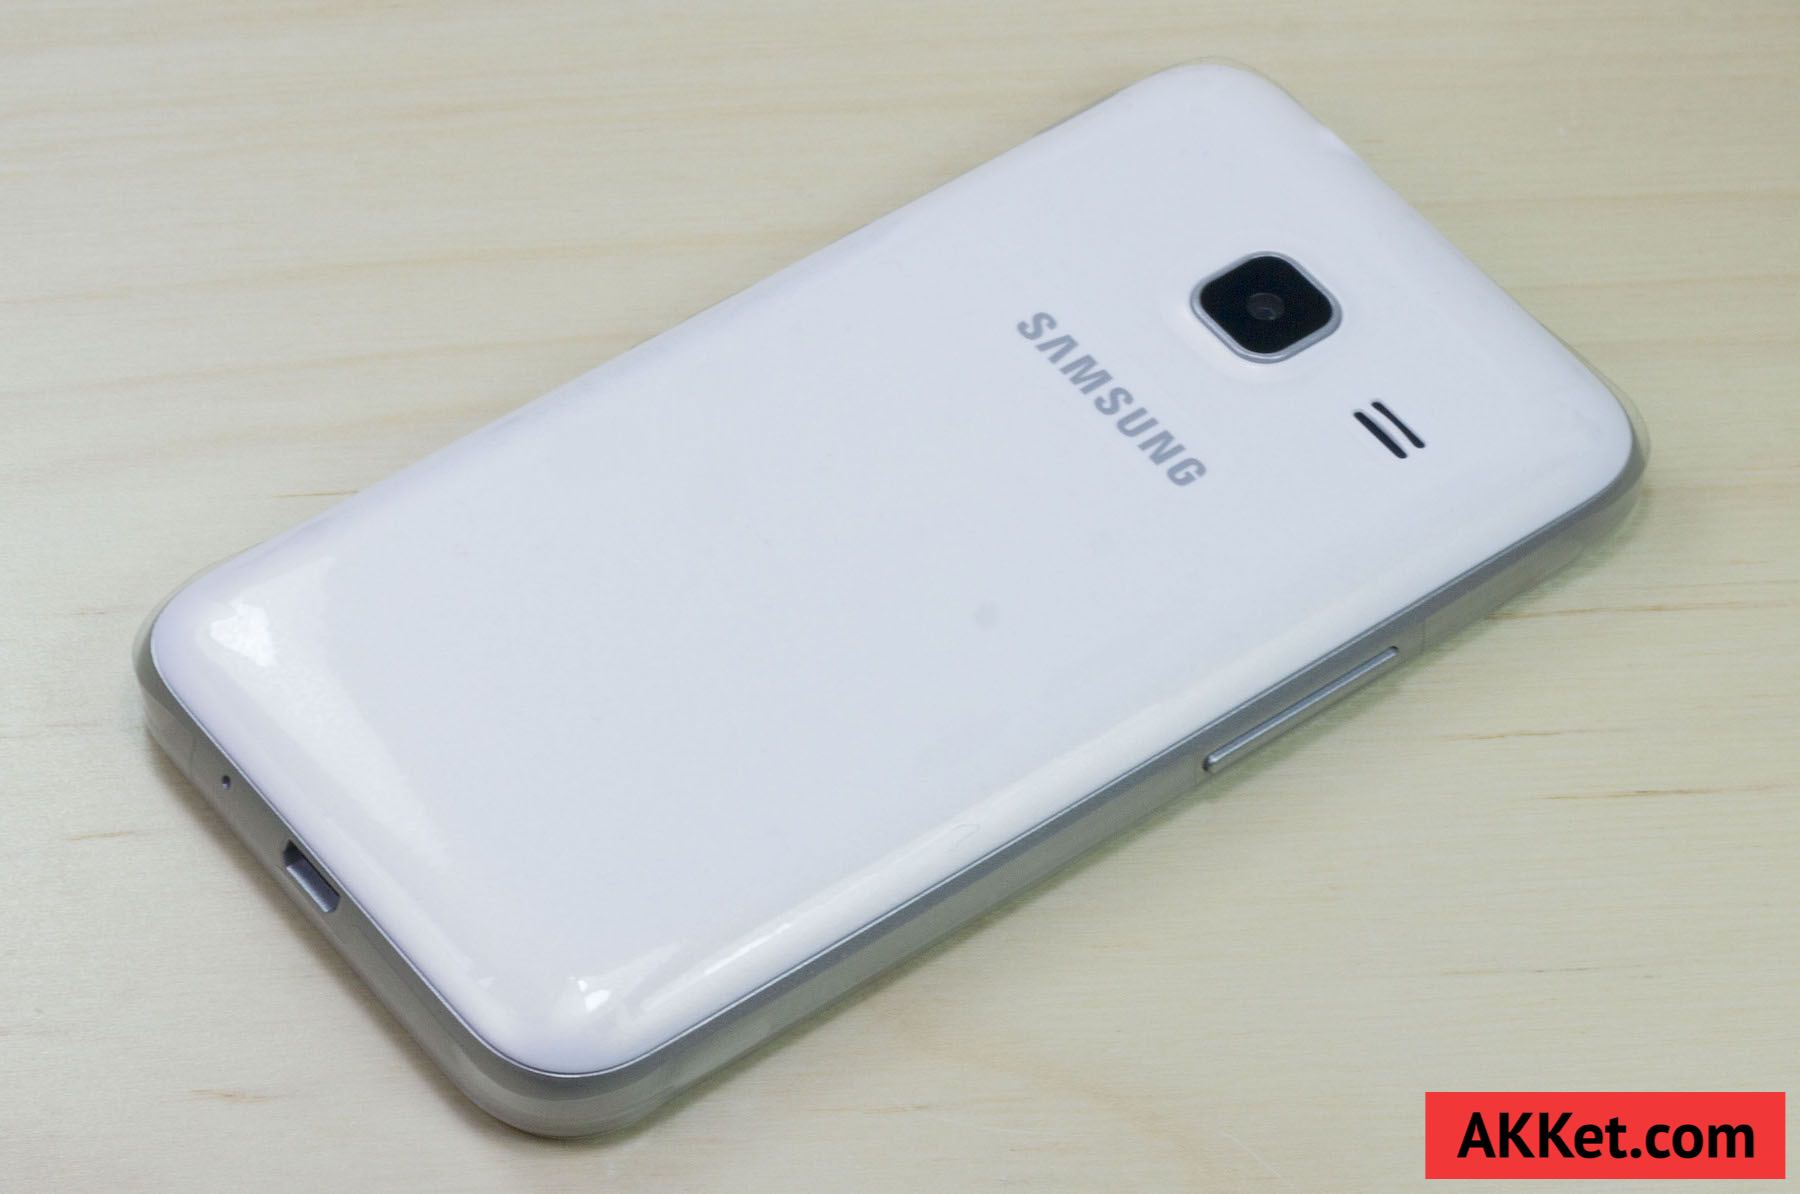 Samsung Galaxy J1 mini Duos Android 5.1.1 Lollipop Review 10